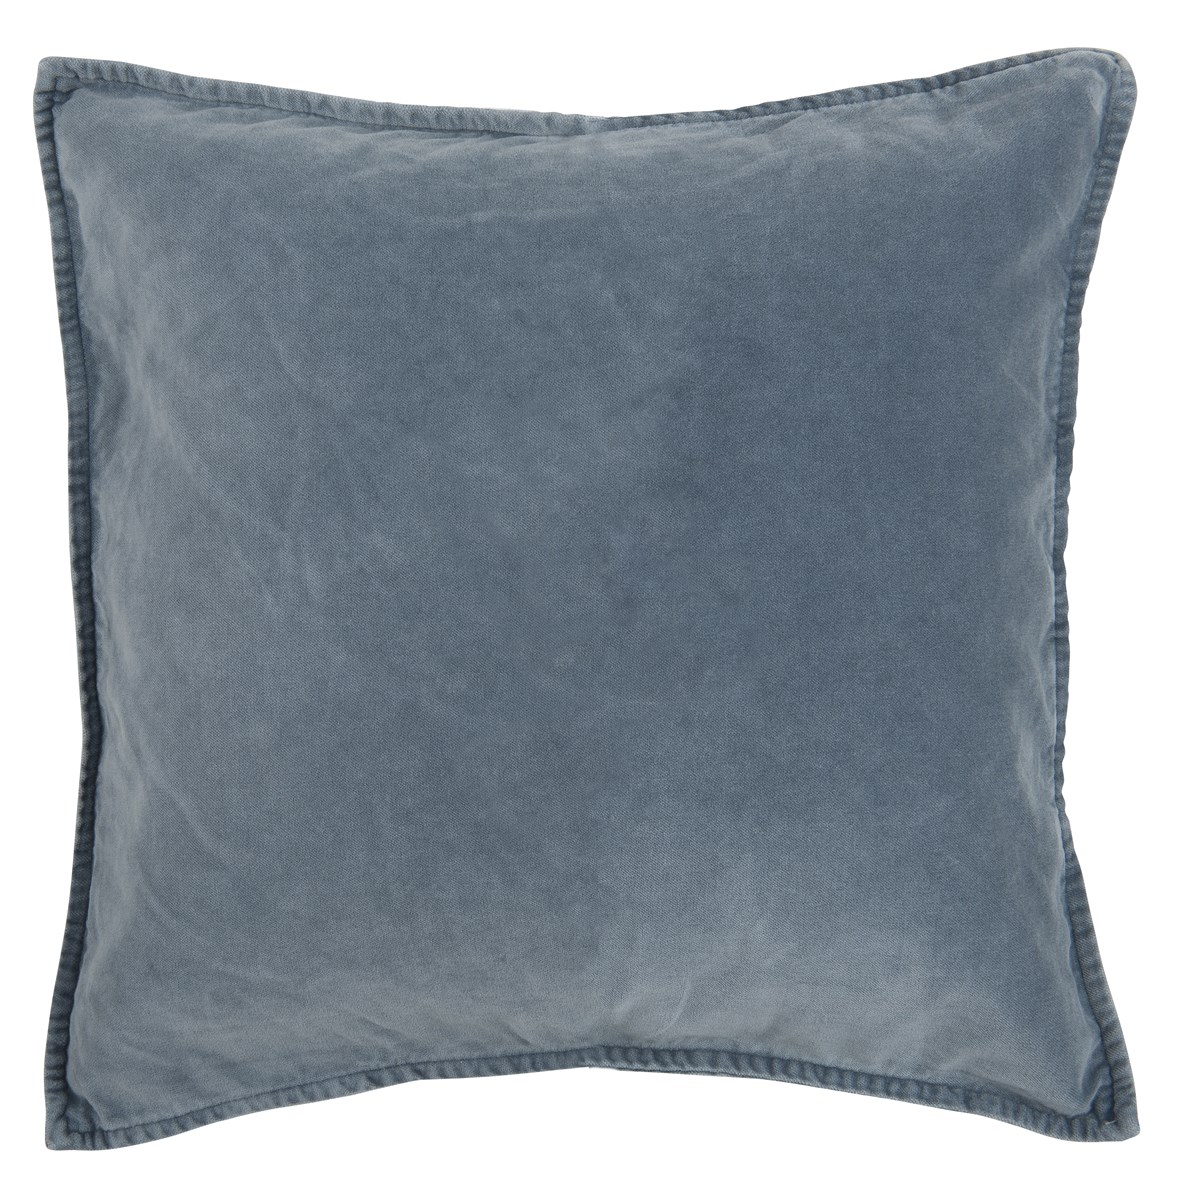 Image of   Ib laursen pudebetræk velour colonial blue